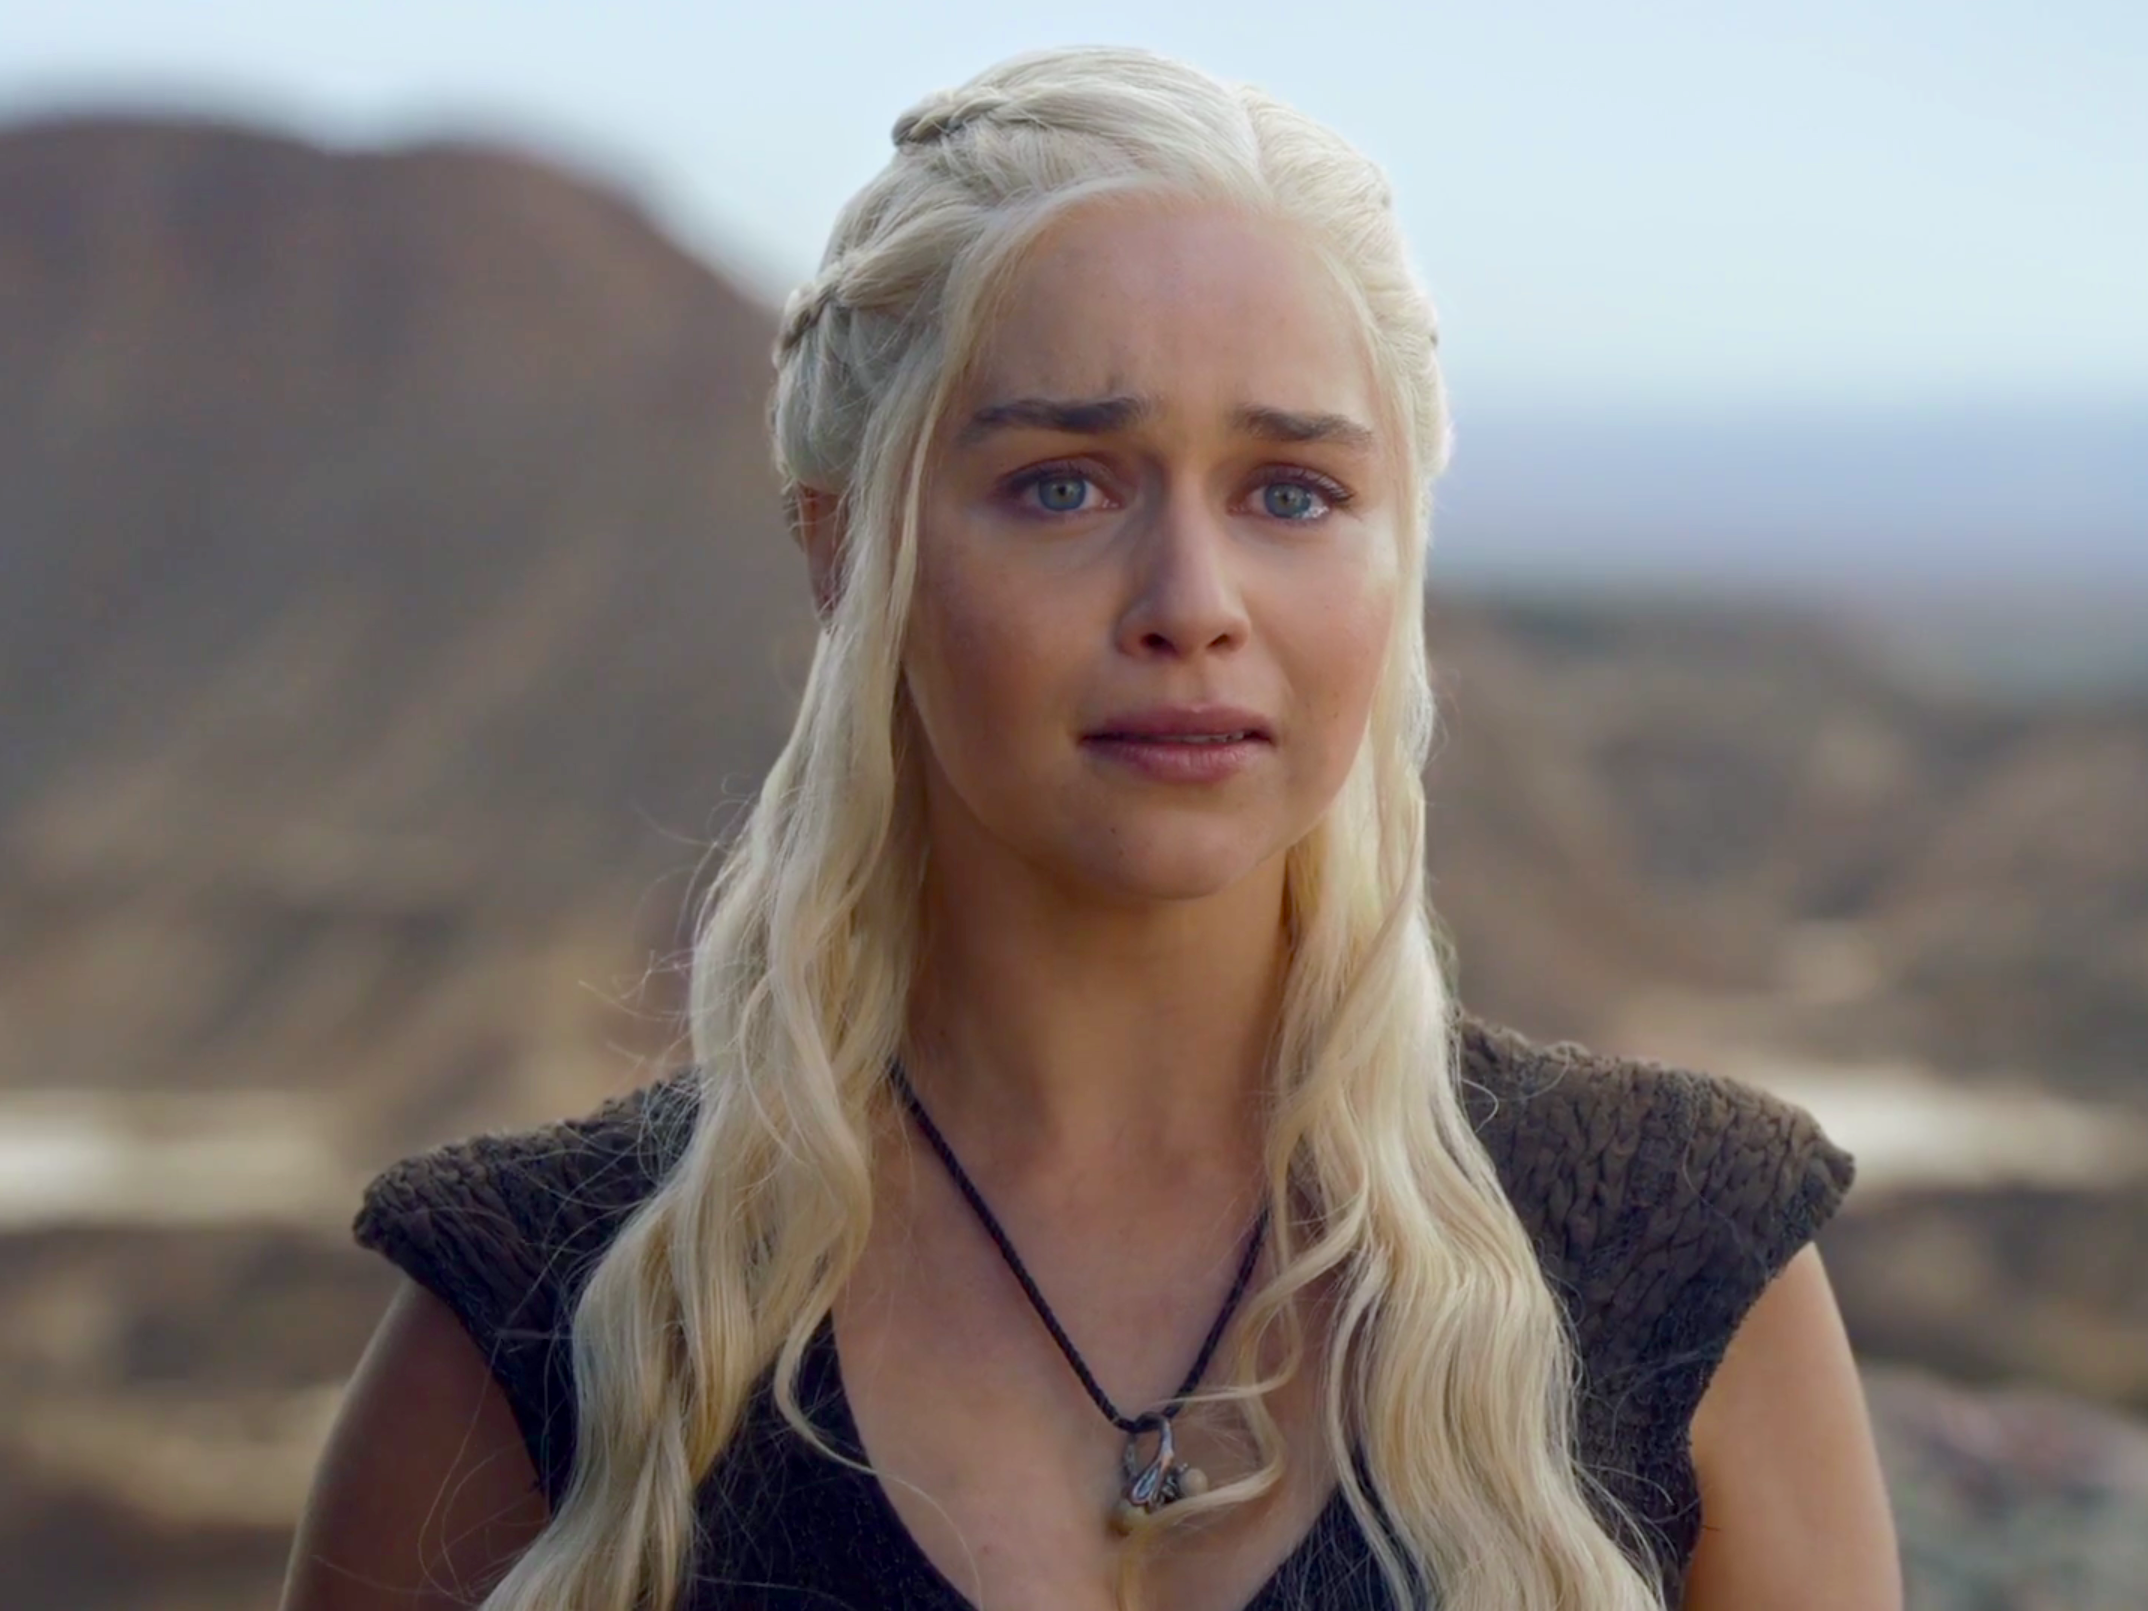 daenerys targaryen crying game of thrones HBO Just Dropped Devastating News For Game Of Thrones Fans